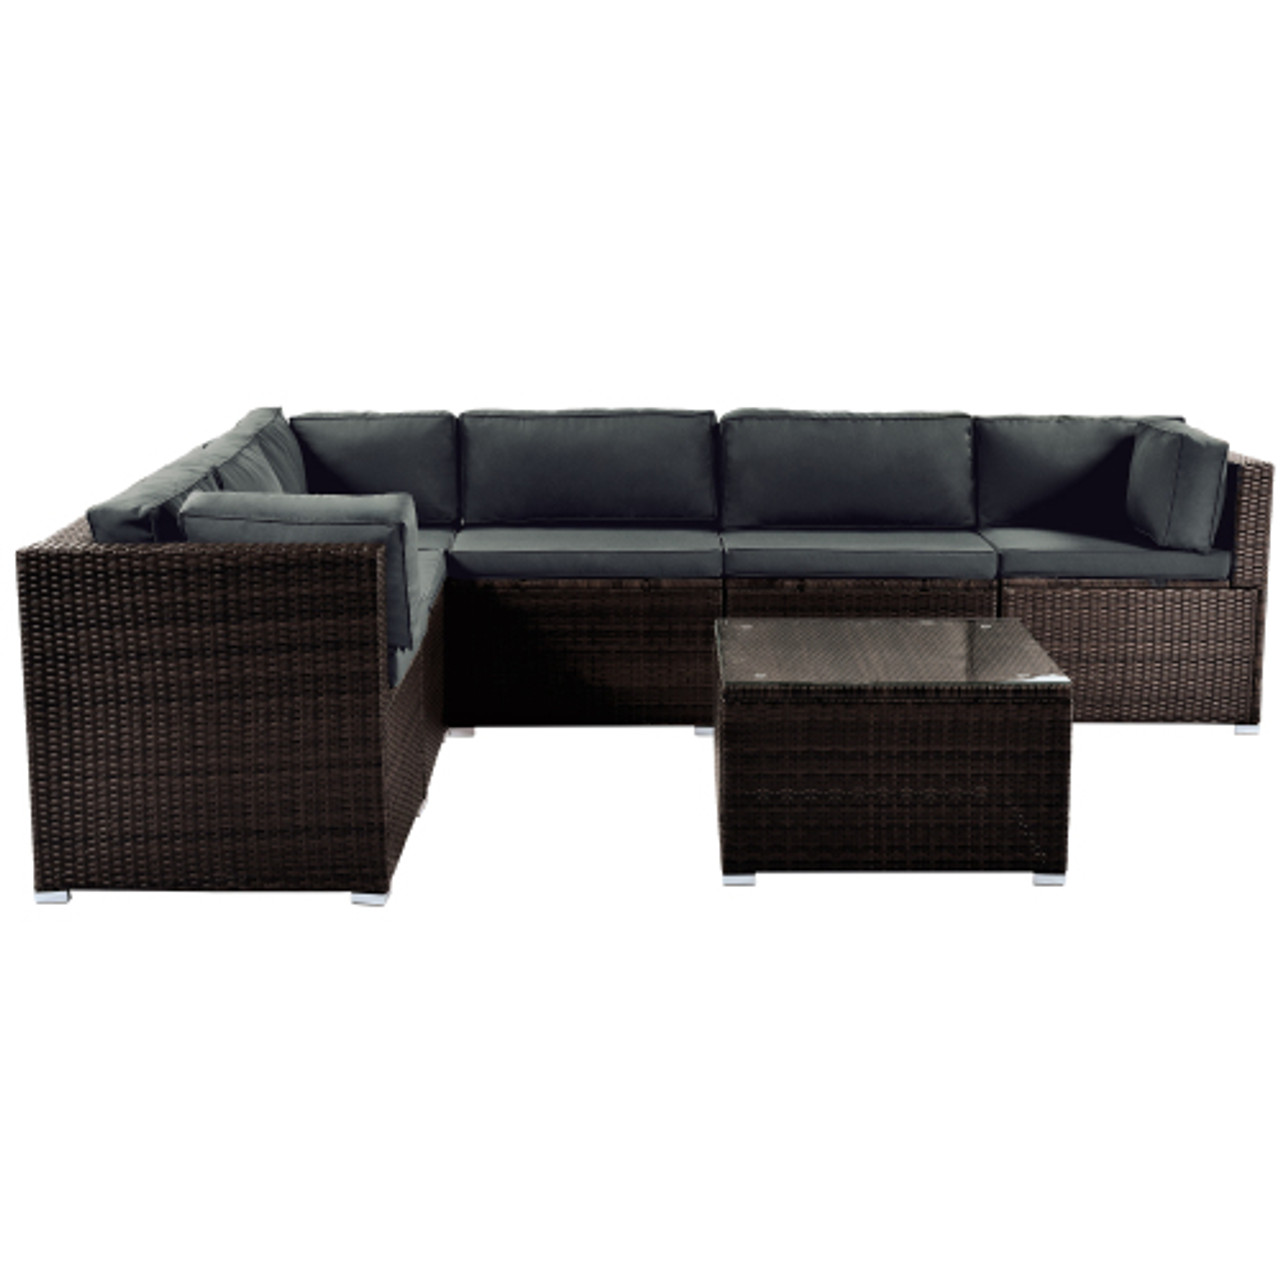 topmax 7 piece patio furniture set outdoor sectional conversation set with soft cushions brown